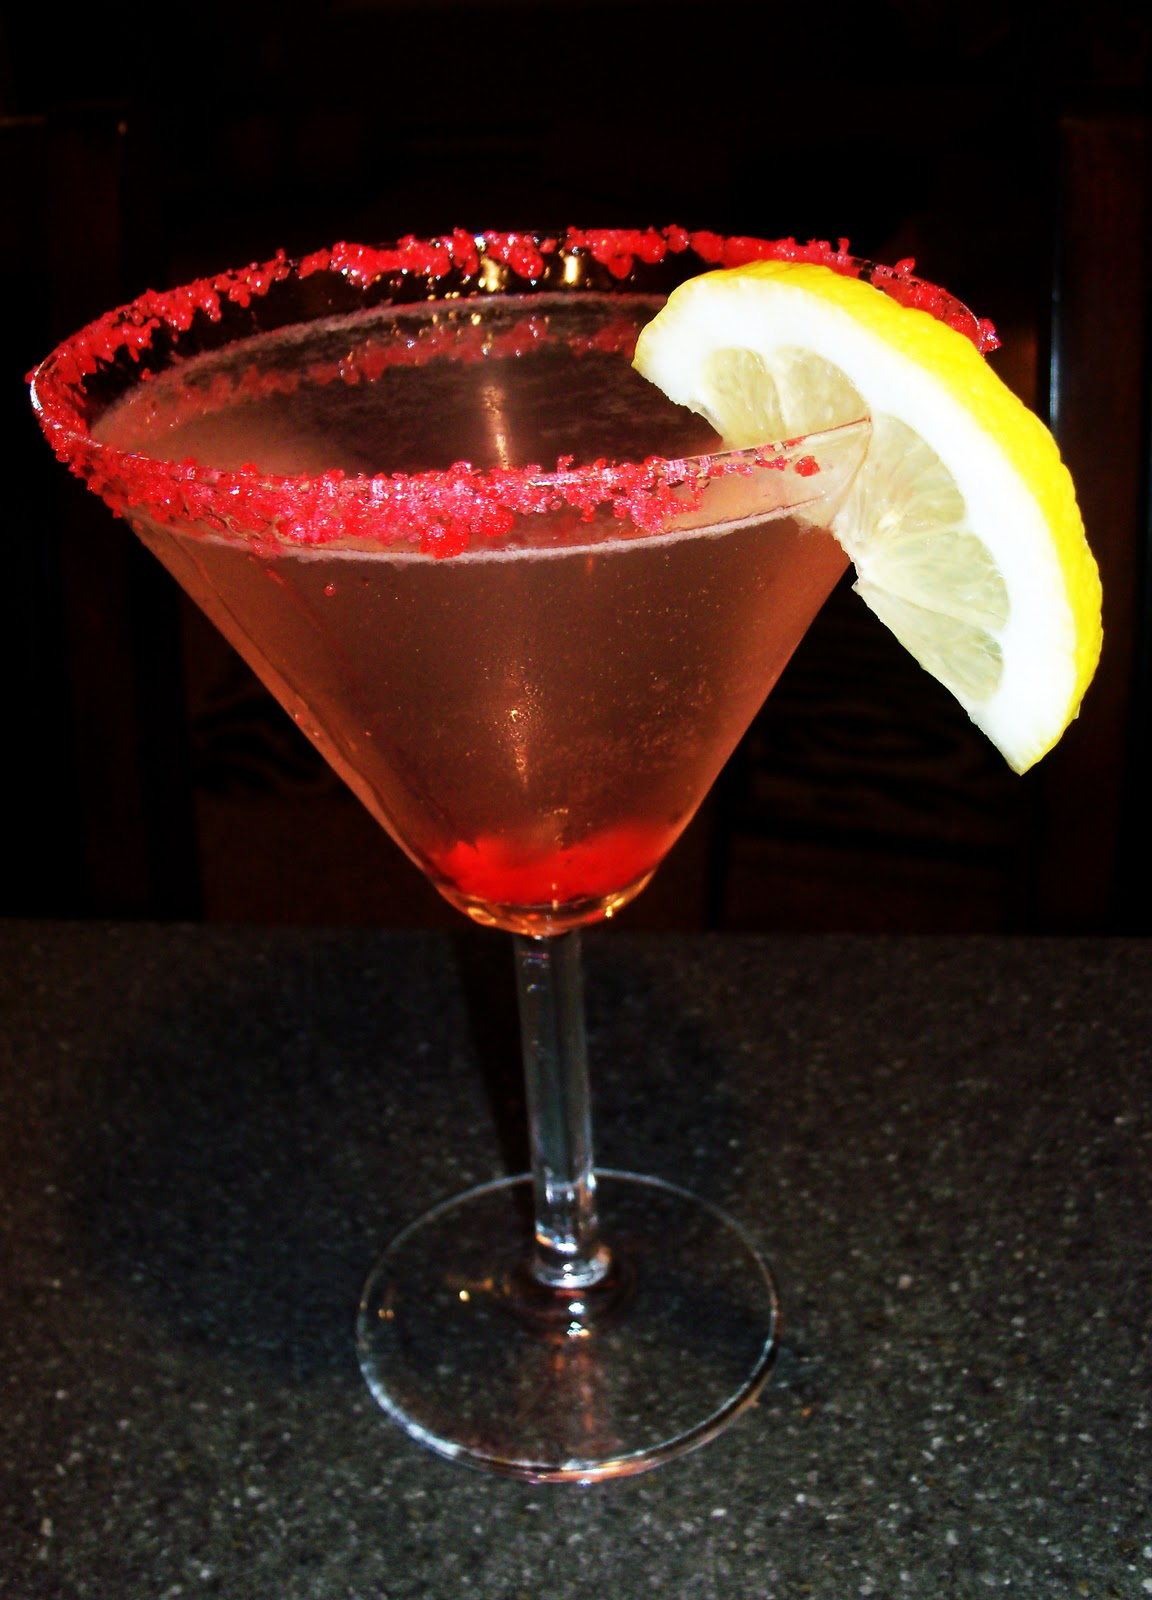 The Foodie Fixx: Cocktails! Rockin' Lemon Drop Martinis & After-Dinne...